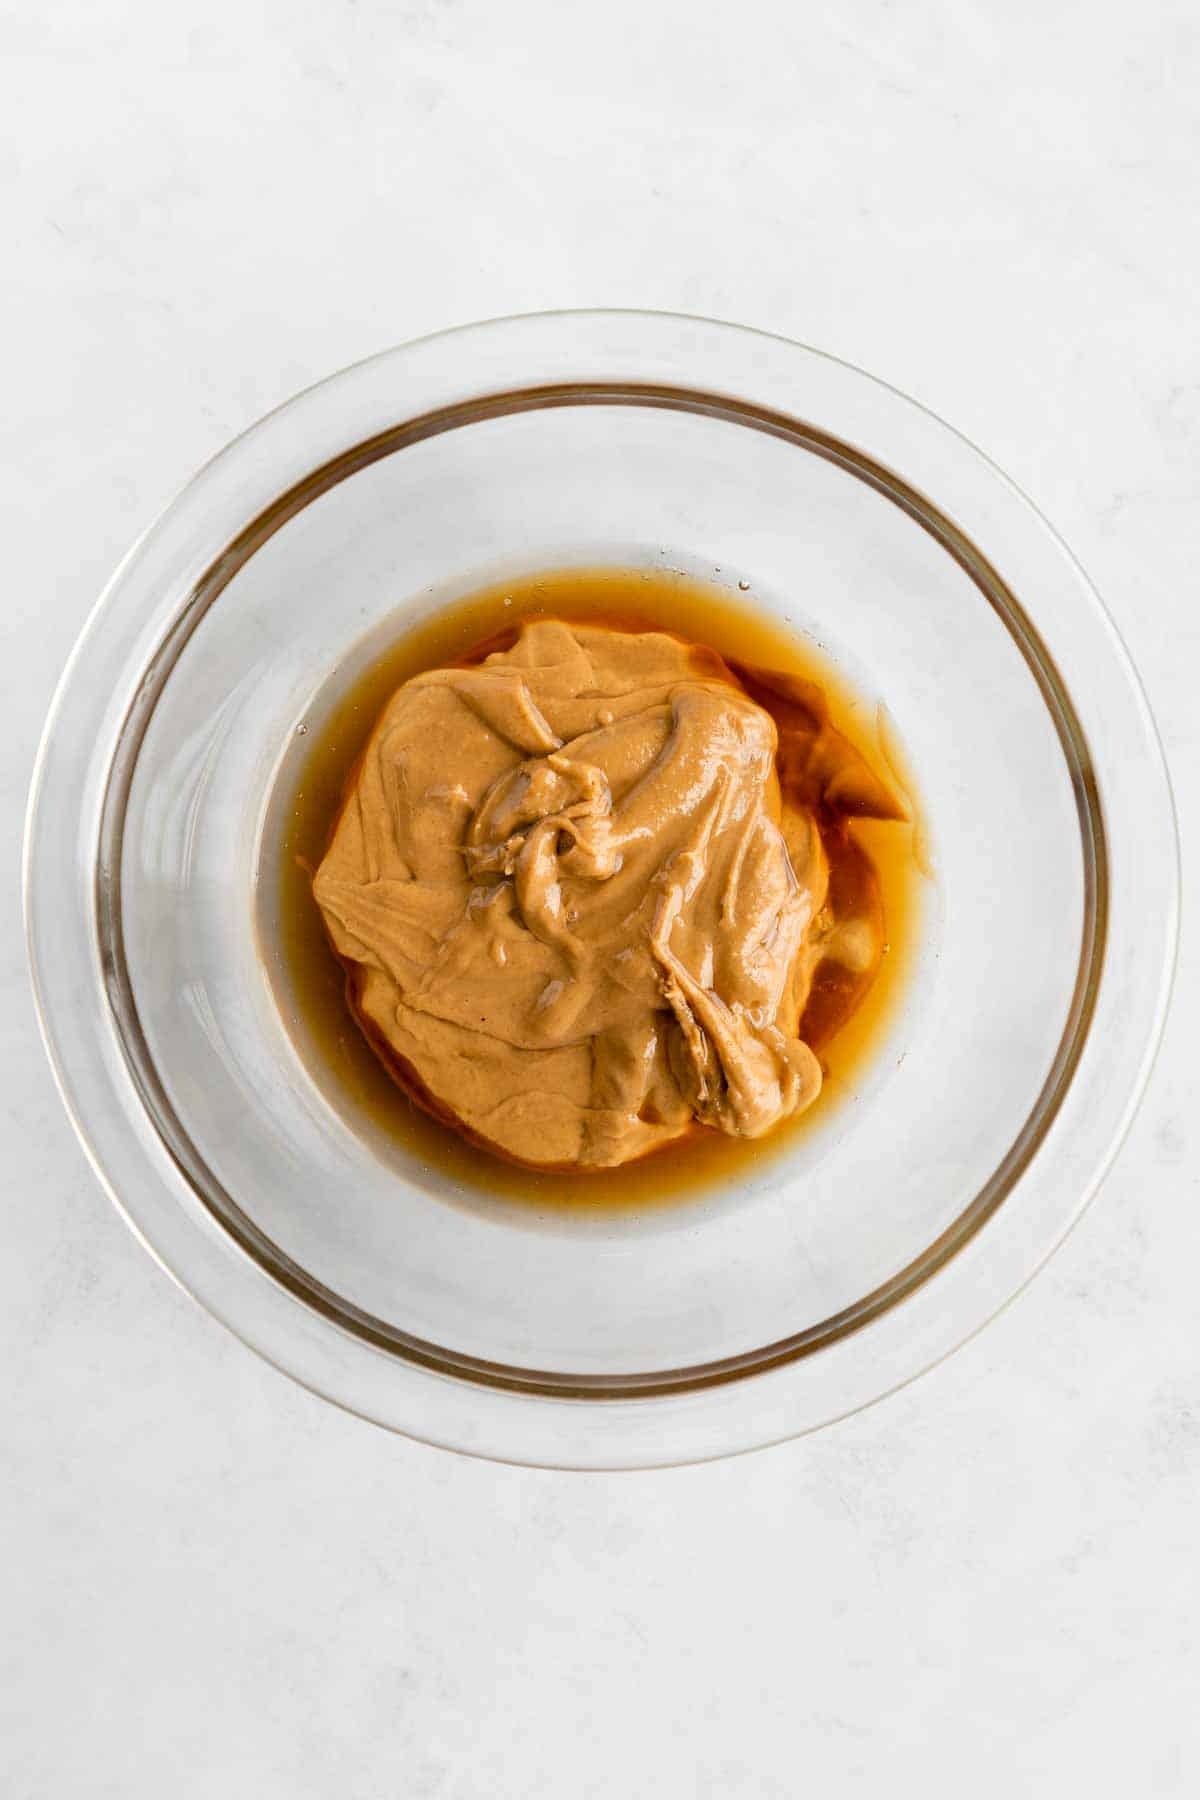 peanut butter and maple syrup in a glass pyrex mixing bowl